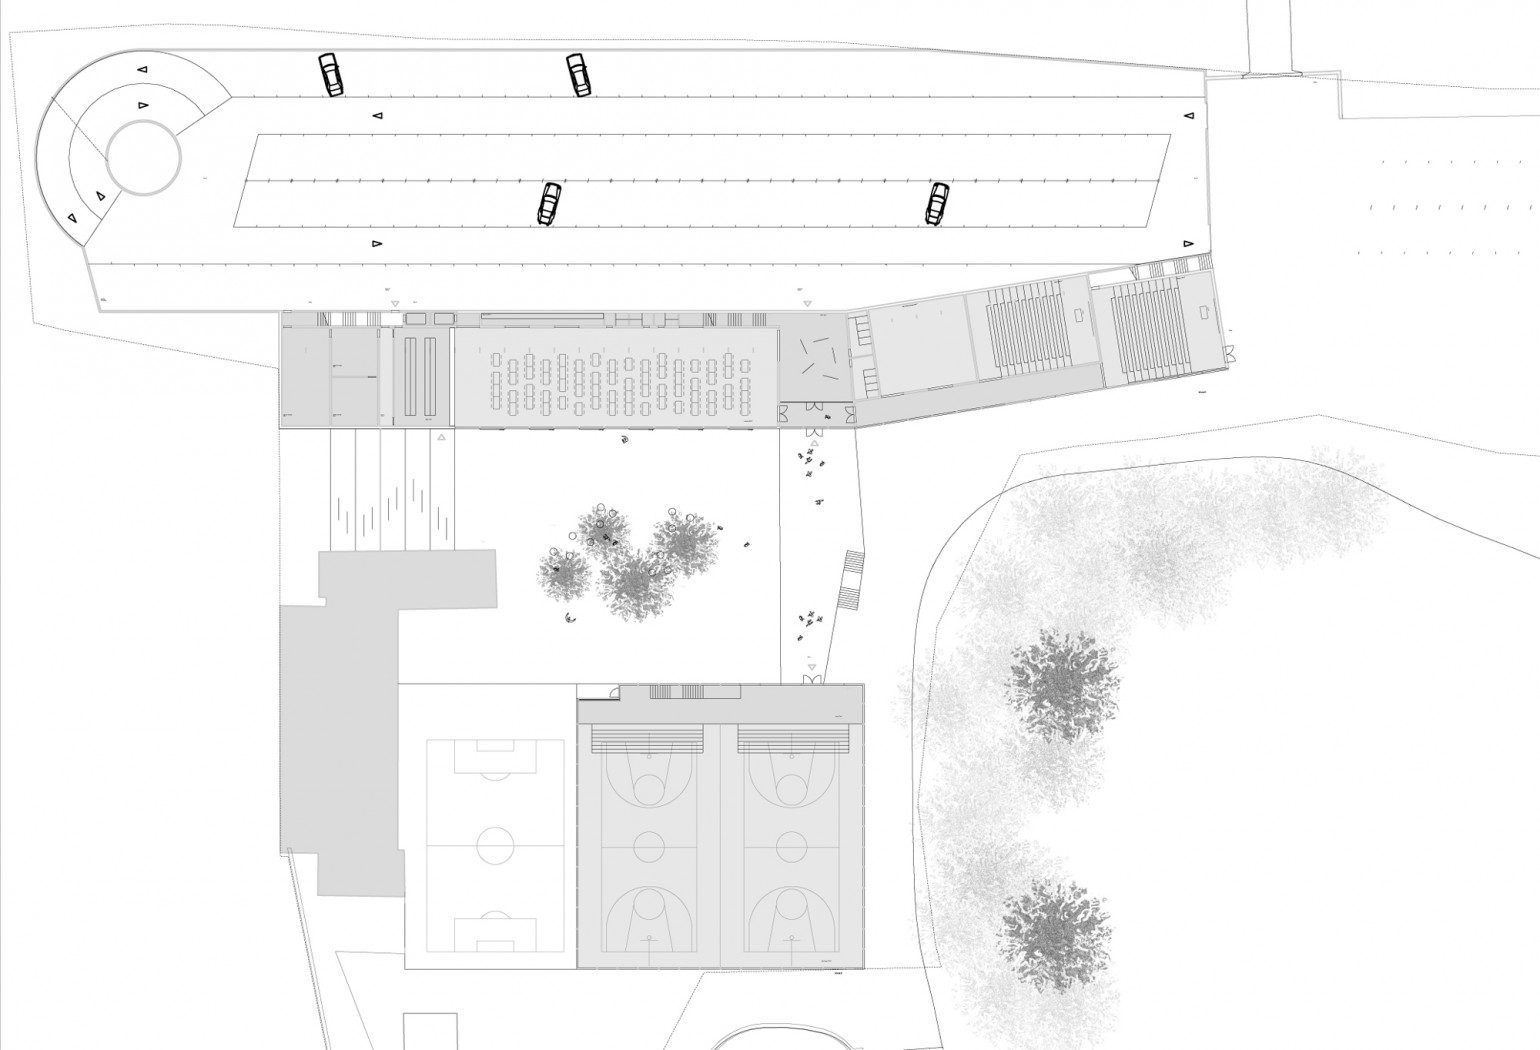 complexe_gare_sud_sierre_meyer_architecture_sion_02